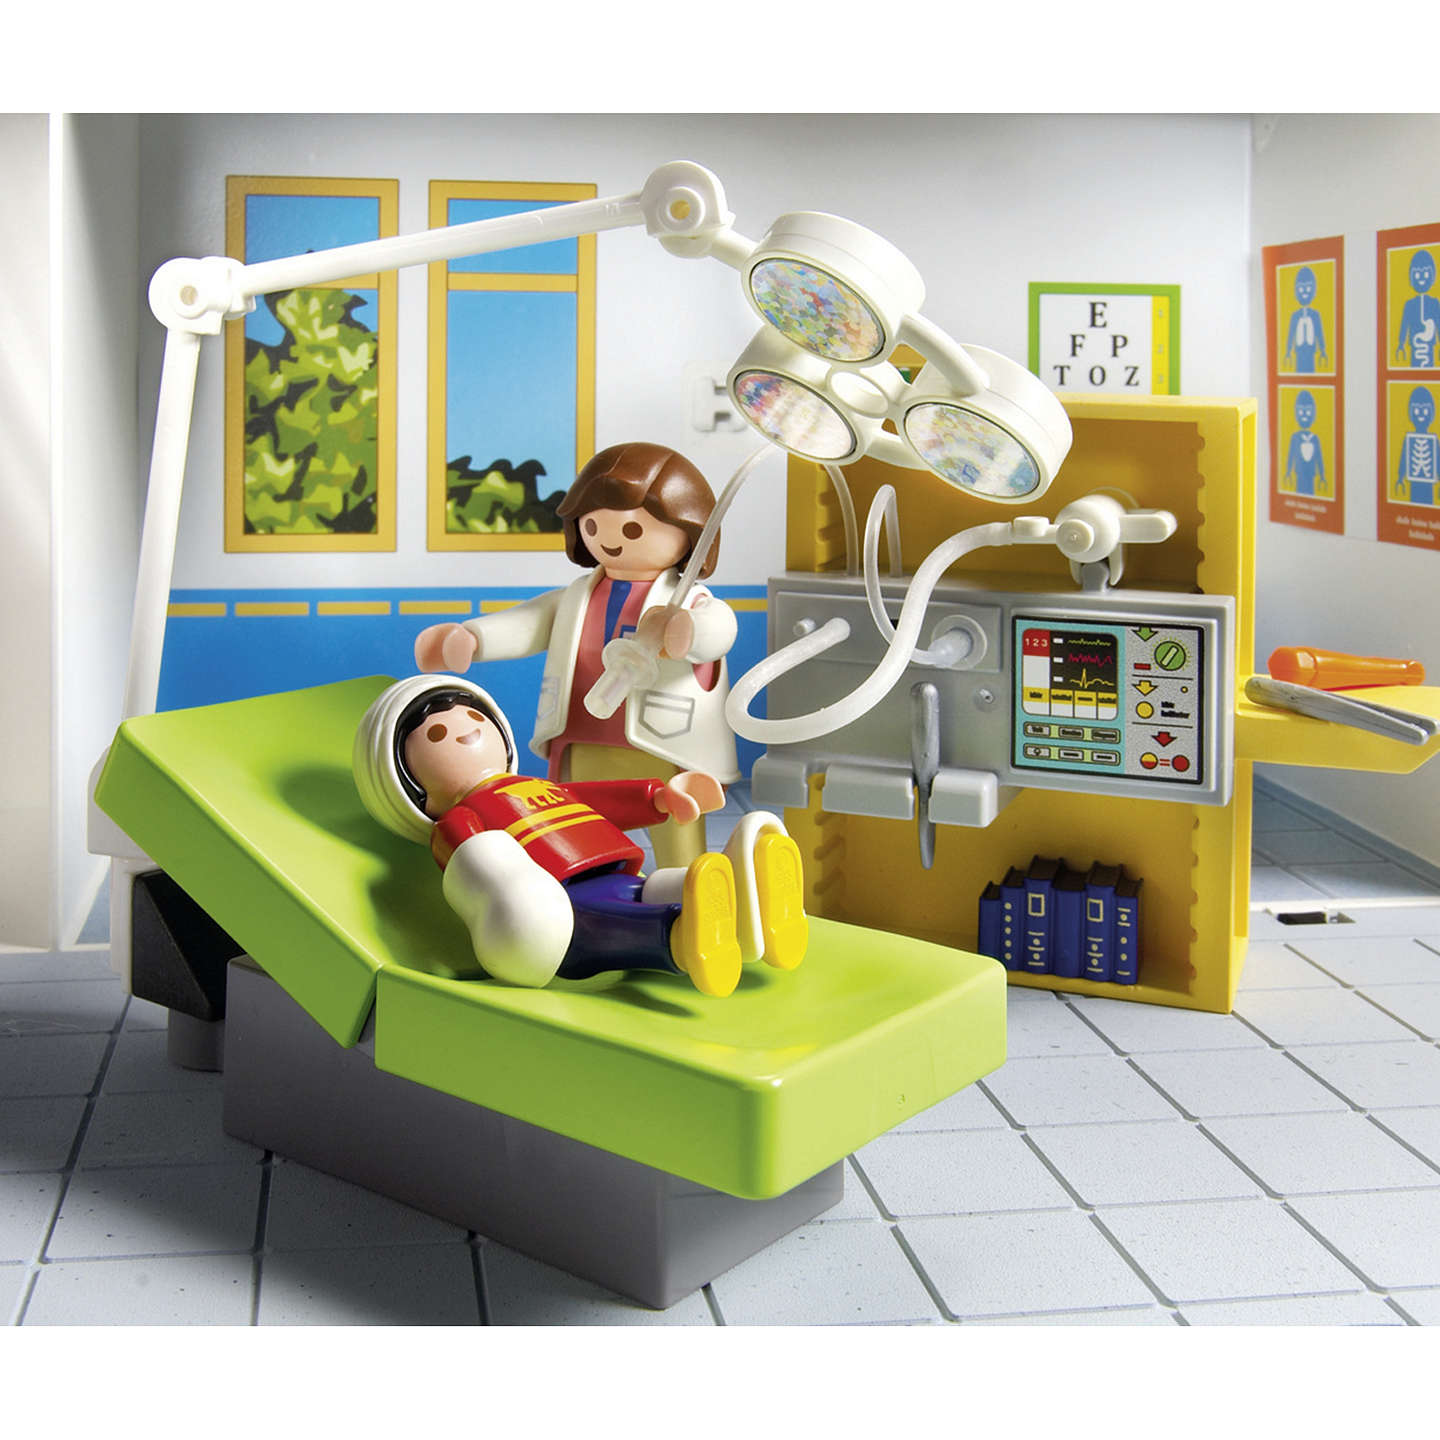 BuyPlaymobil City Action Take Along Hospital Playset Online at johnlewis.com